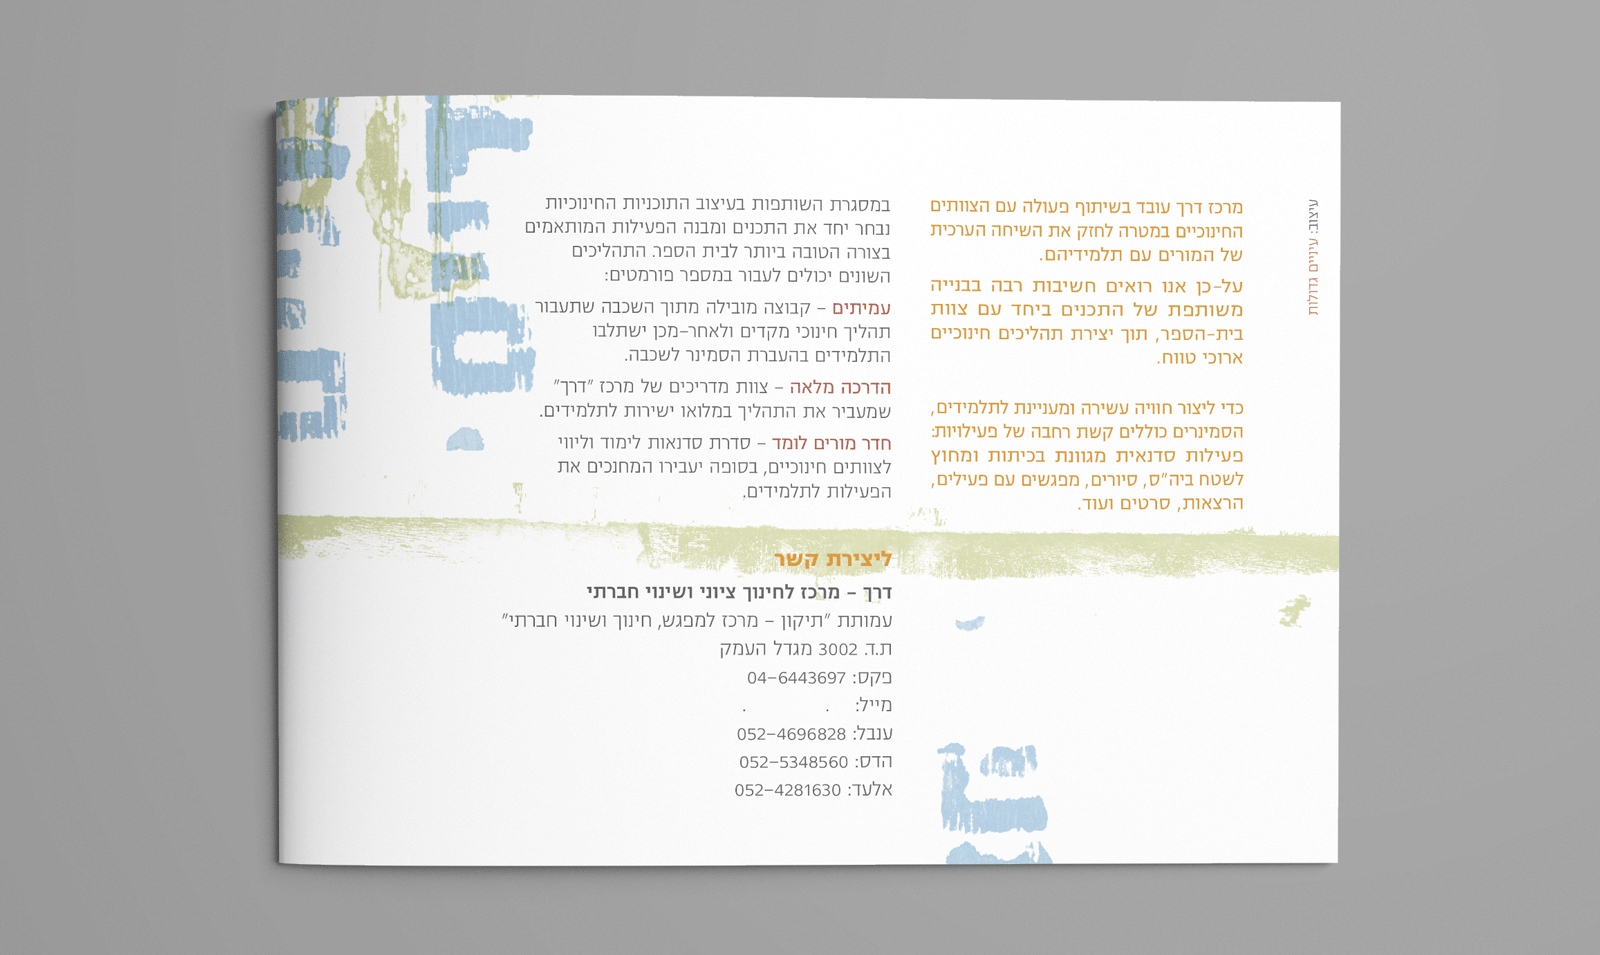 https://bigeyes.co.il/wp-content/uploads/2019/06/derech-2009-05.png